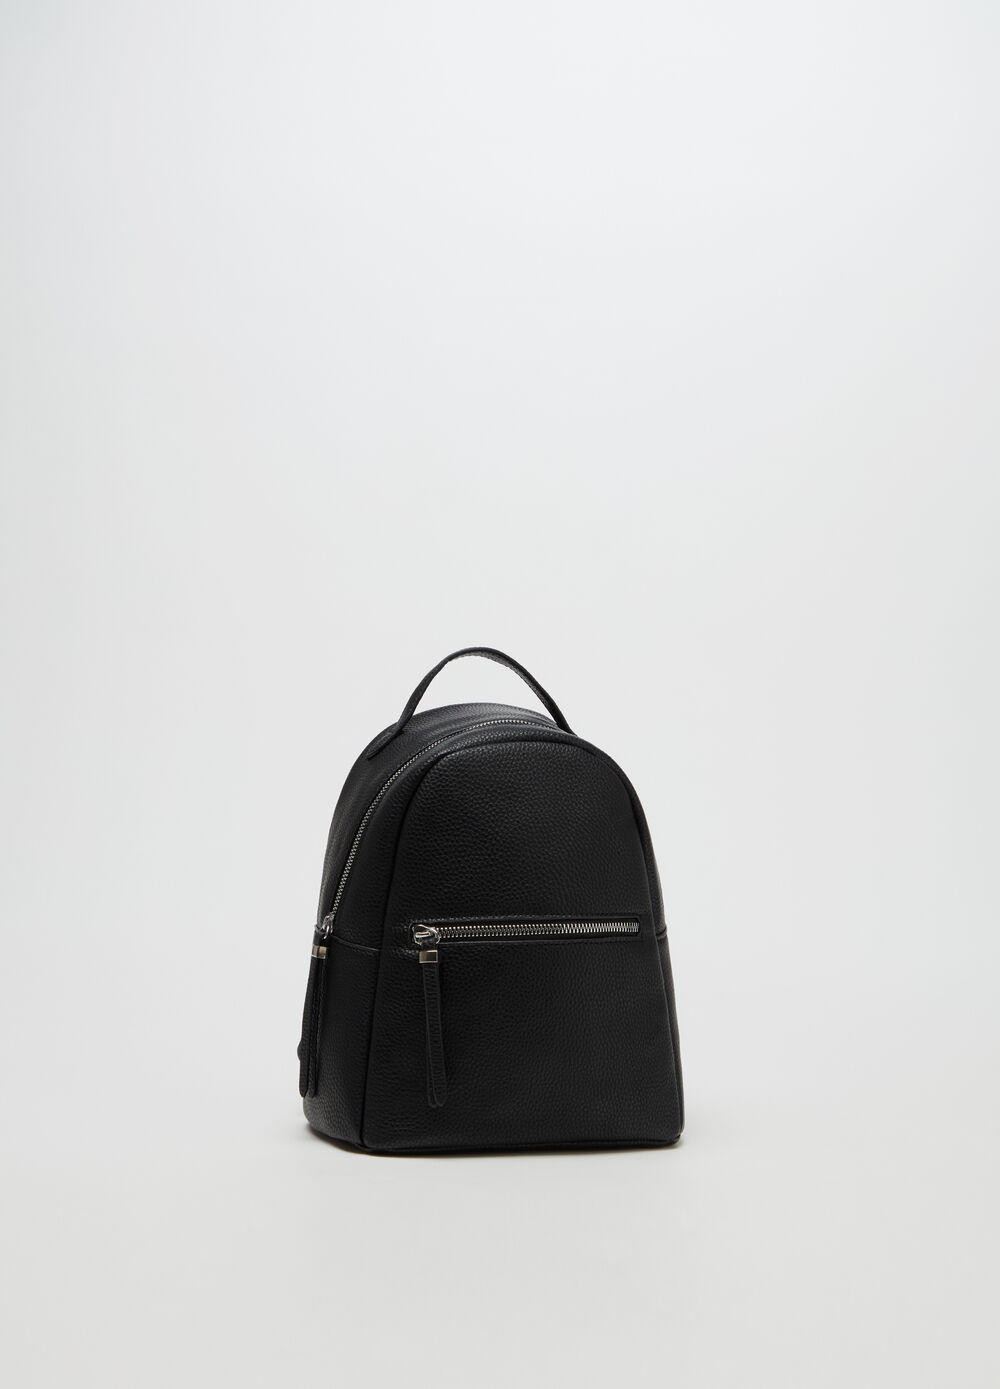 Textured-effect leather-look backpack with zip